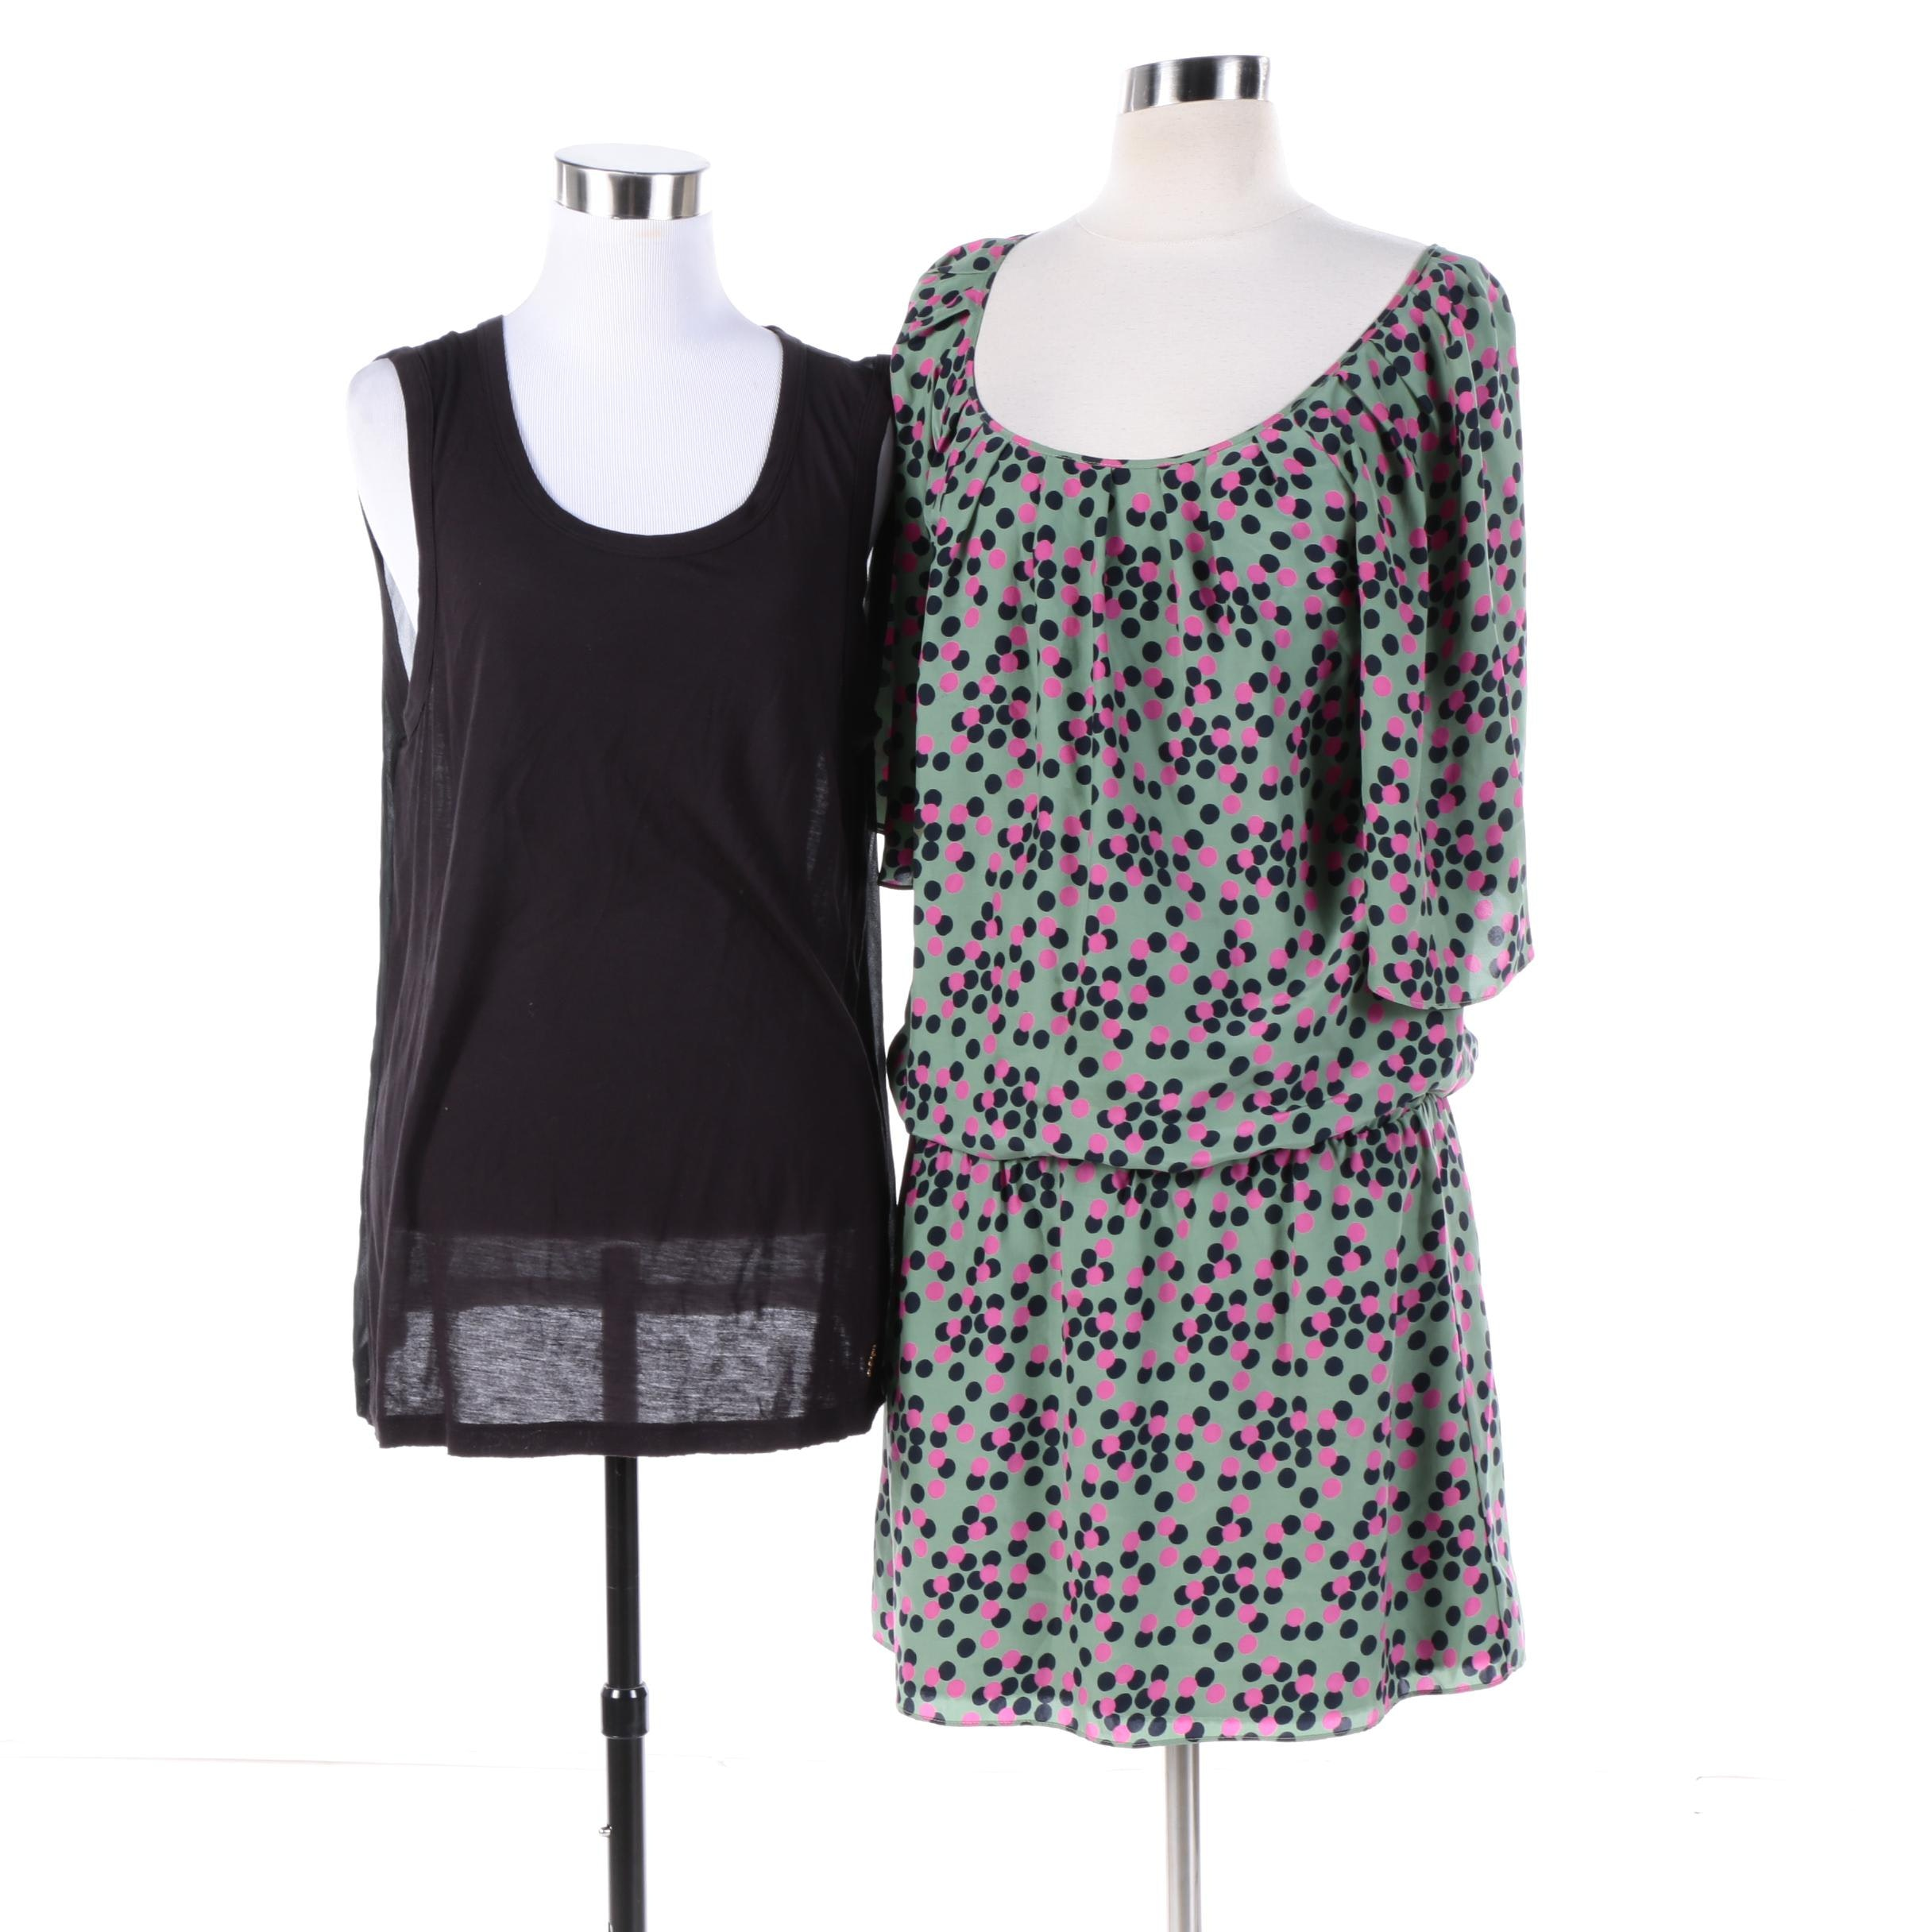 Women's Juicy Couture Silk Polka Dot Dress and Black Tank Top